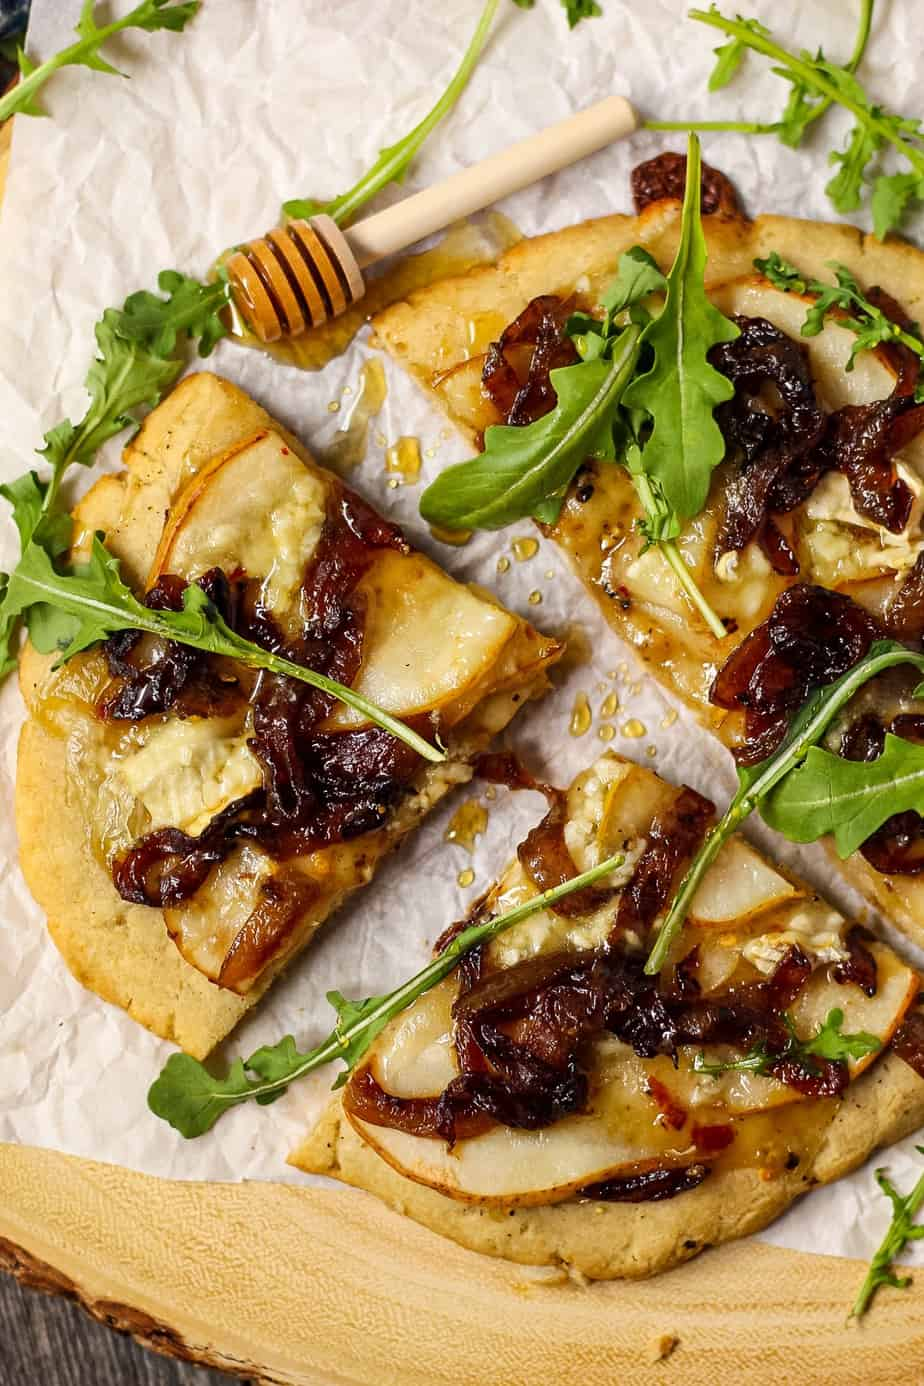 overhead shot of flatbread topped with sliced pears, caramelized onions and brie cheese. Garnished with arugula and honey. Flatbread is on top of parchment on a wooden serving board.